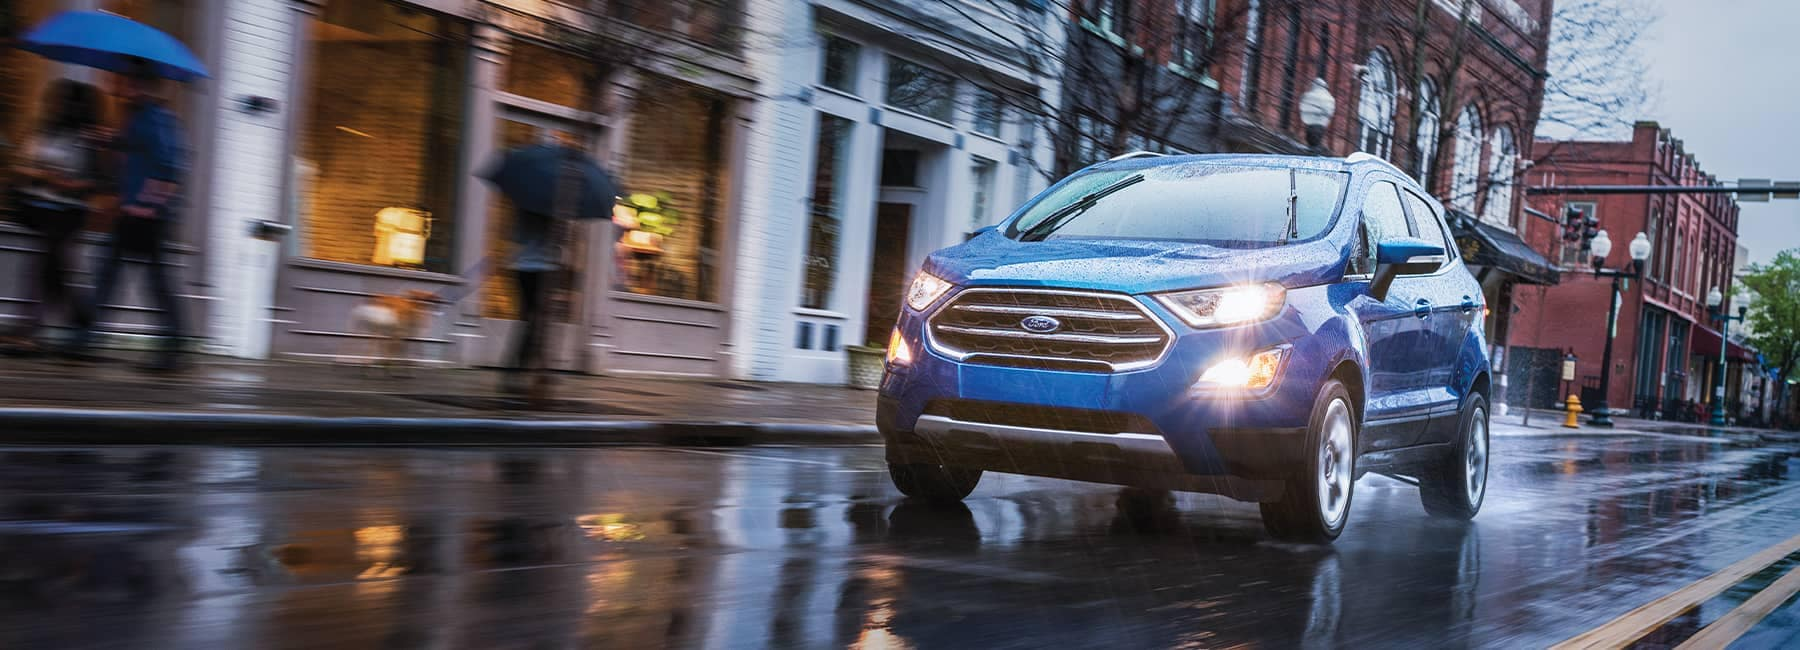 2021 Ford EcoSport driving on a rainy suburban town street